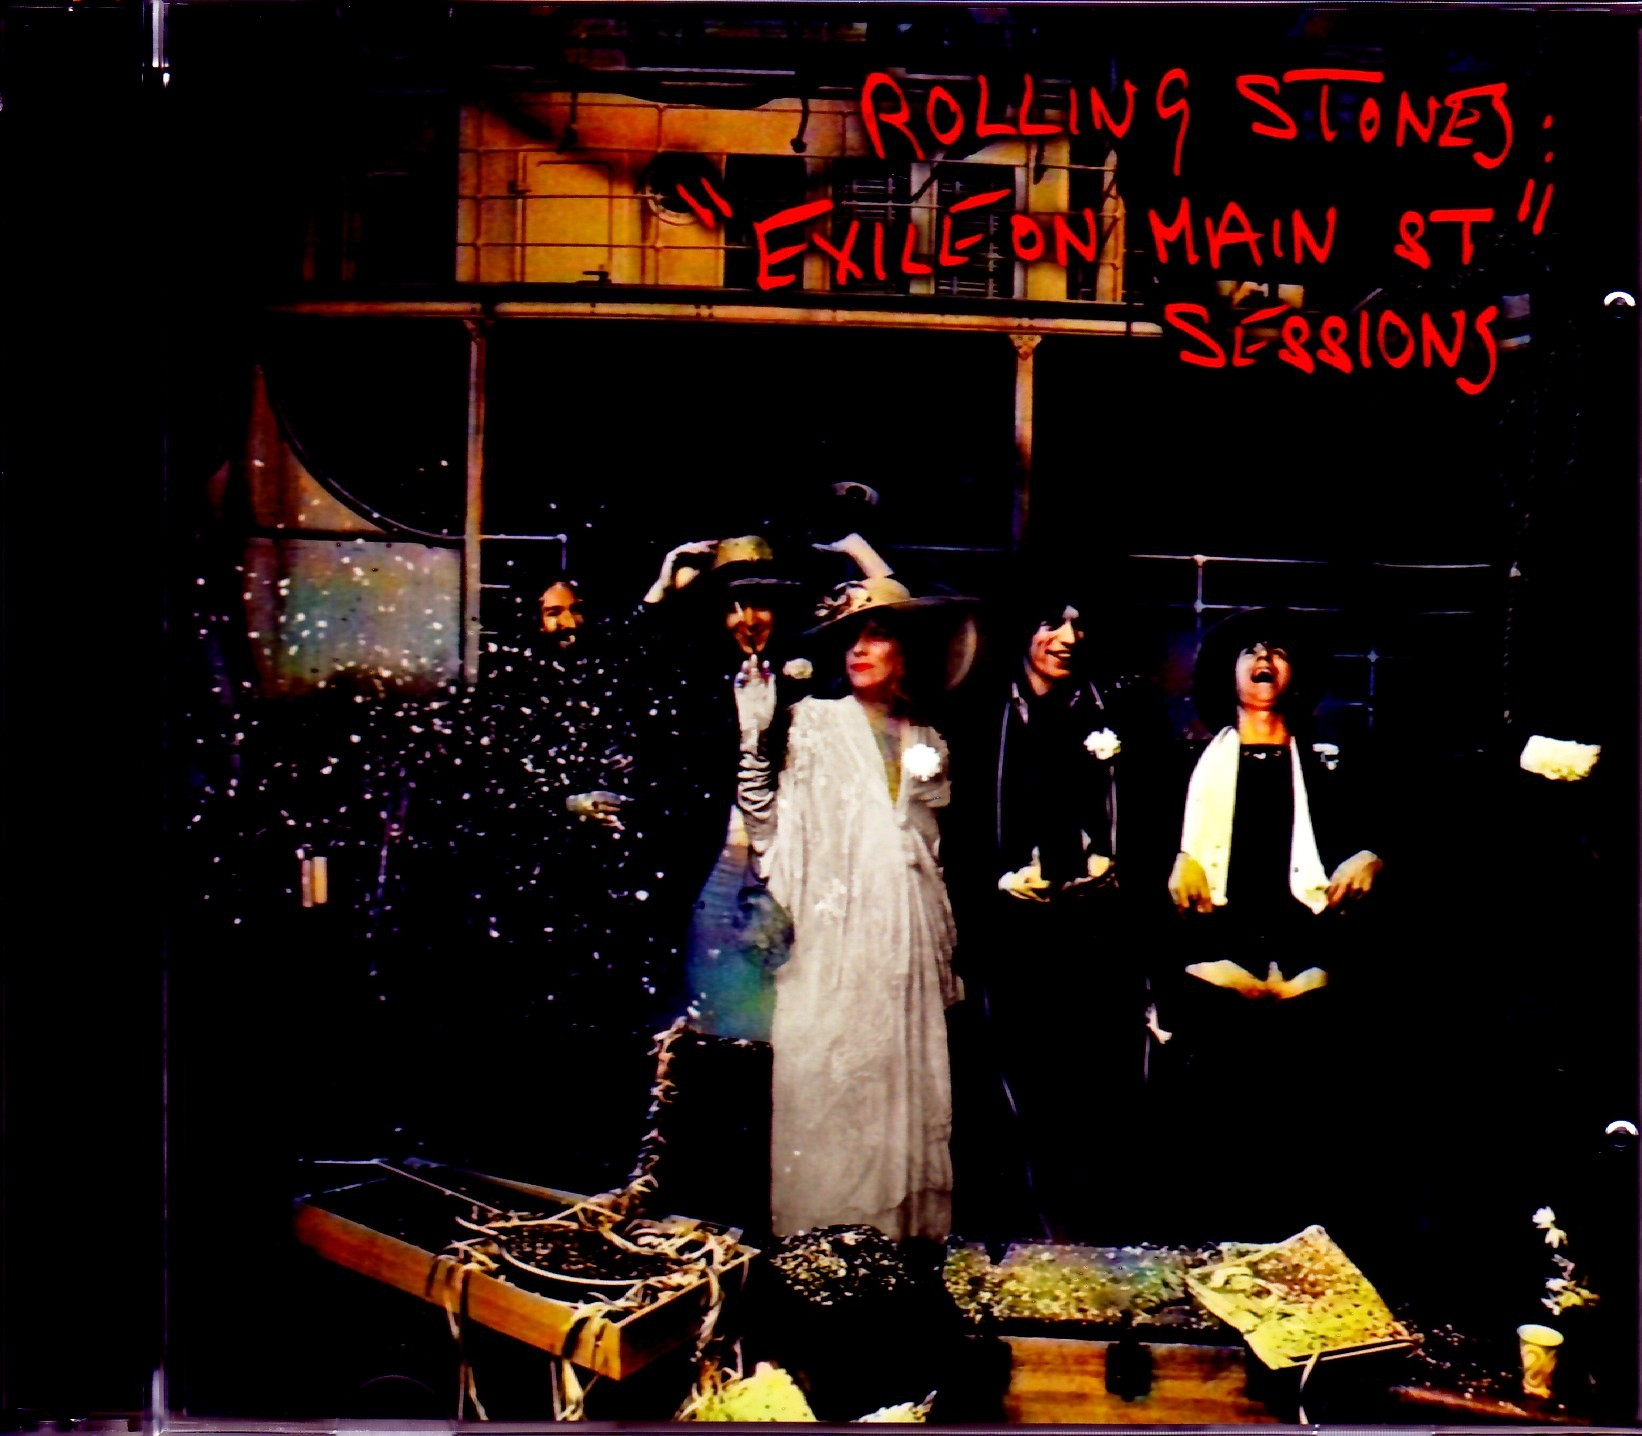 Rolling Stones ローリング・ストーンズ/Exile on Main.ST Sessions